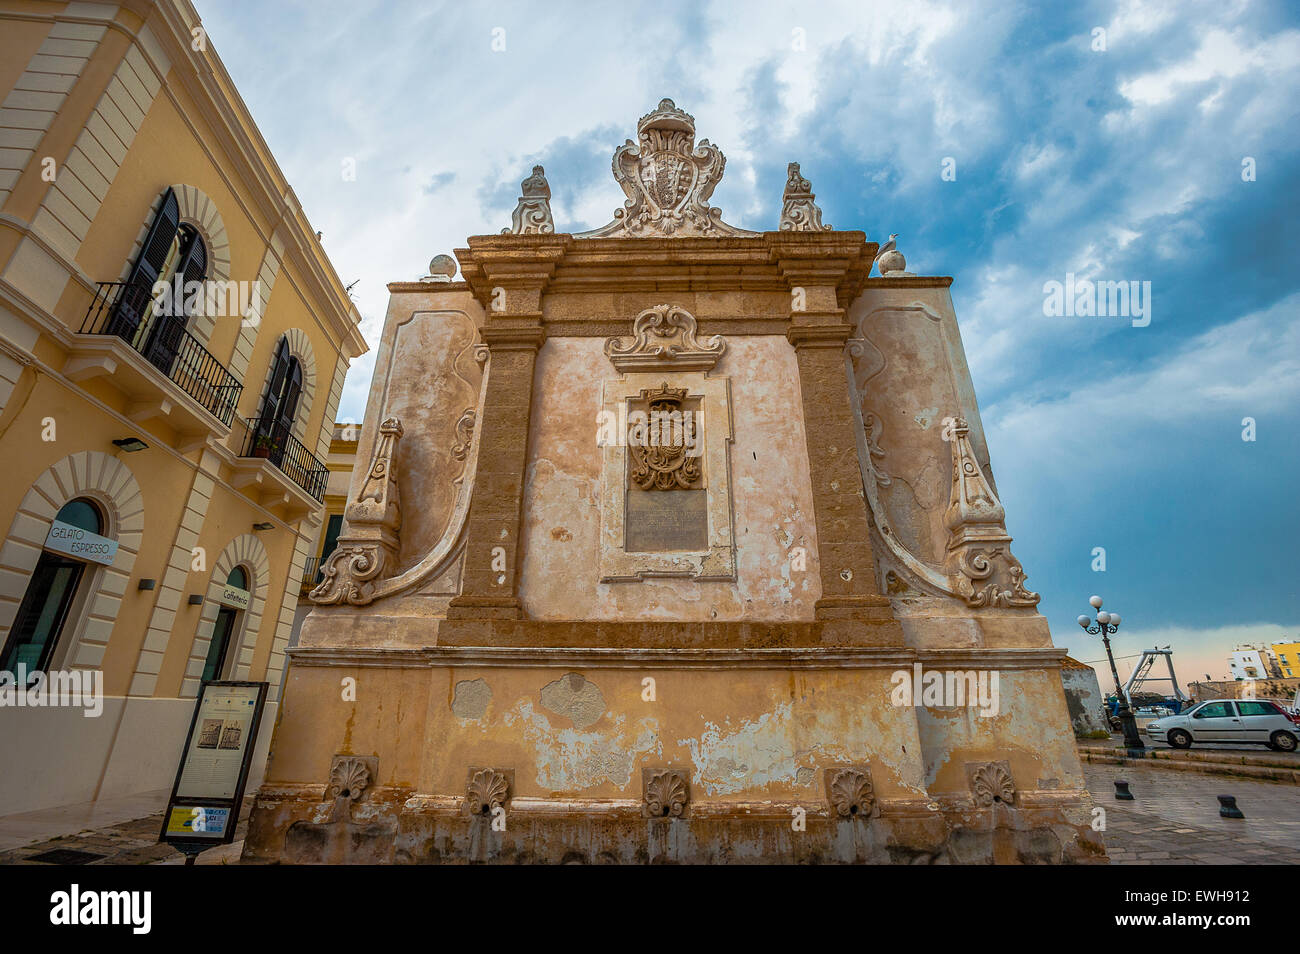 Italy Apulia Salento Gallipoli Hellenistic Fountain - Stock Image